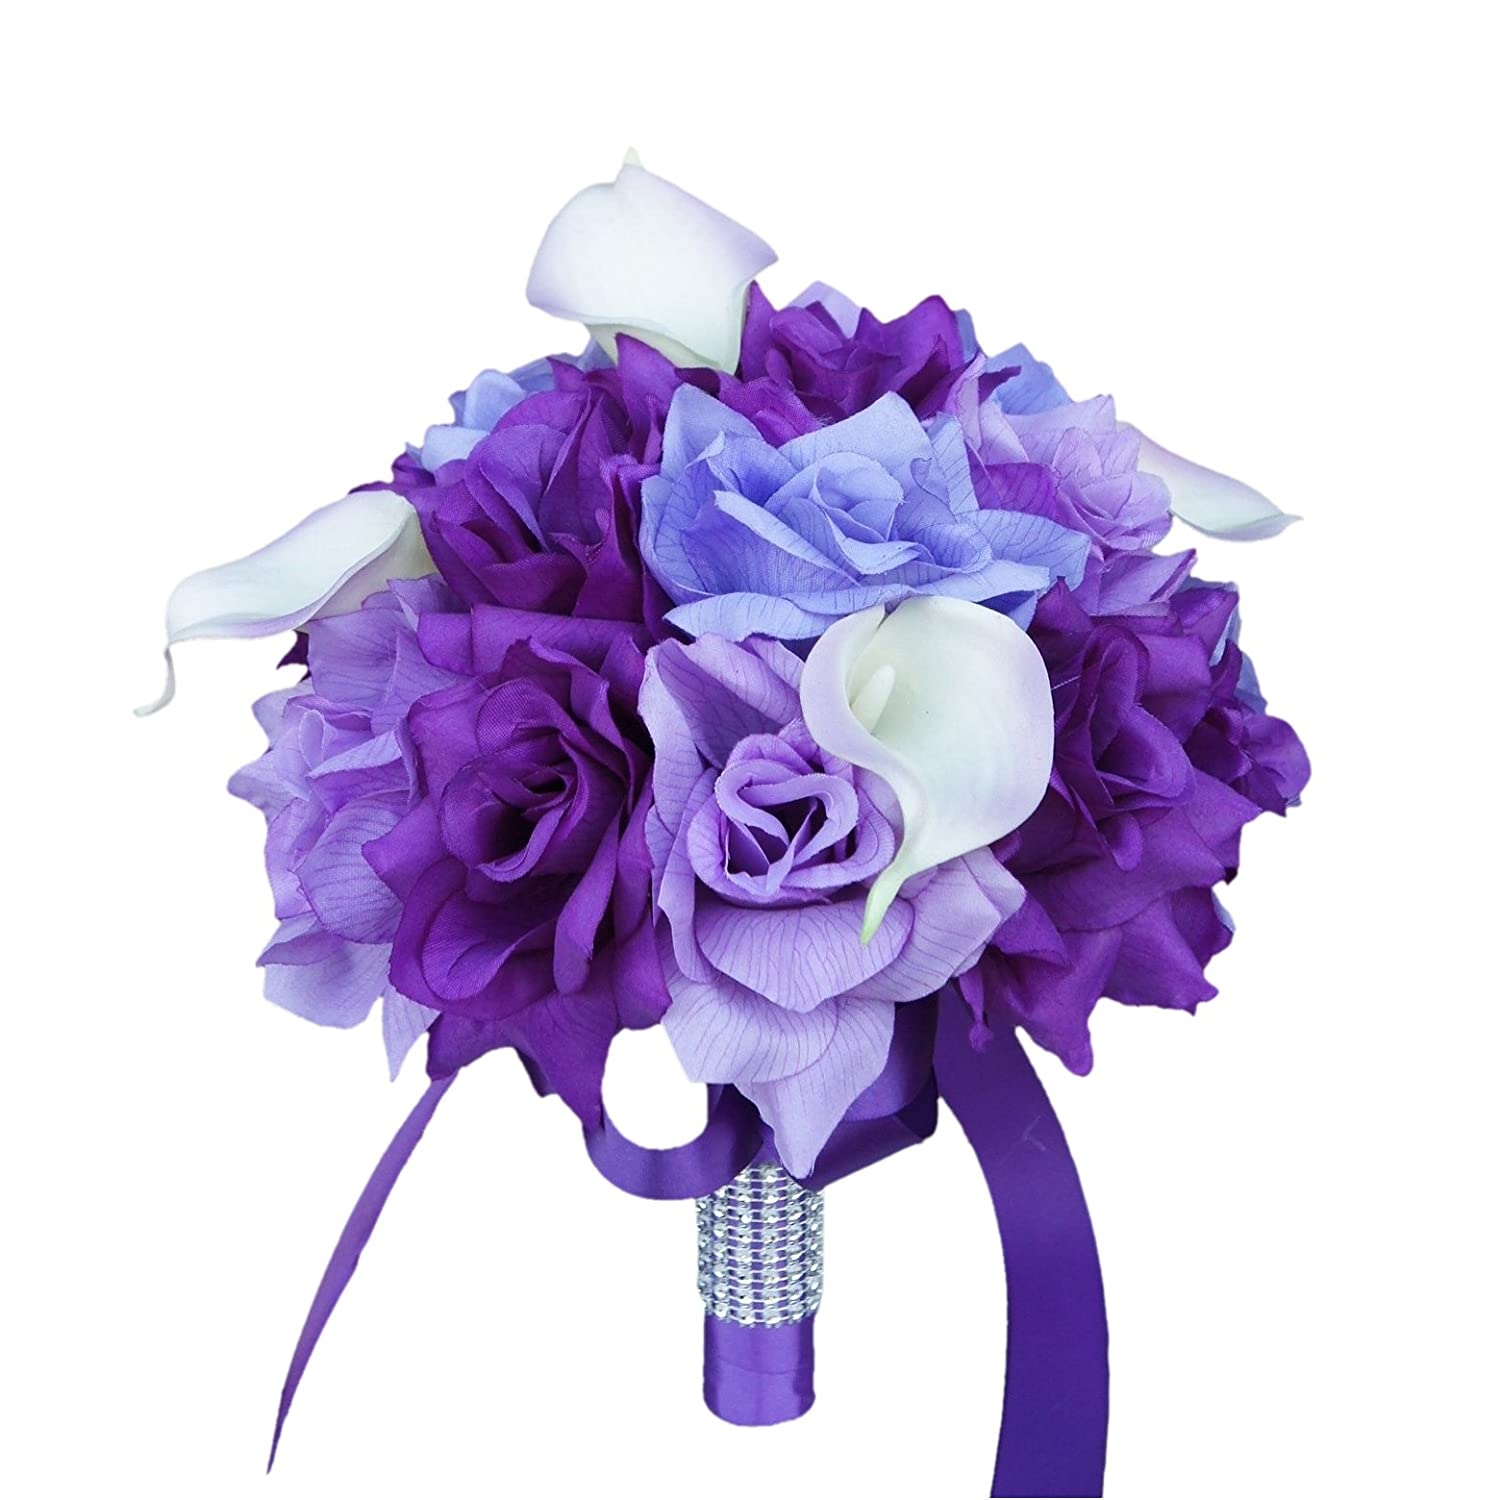 Wedding Bouquet - Shades of Purple, Lavender with Real Touch Calla LilyÊ Angel Isabella